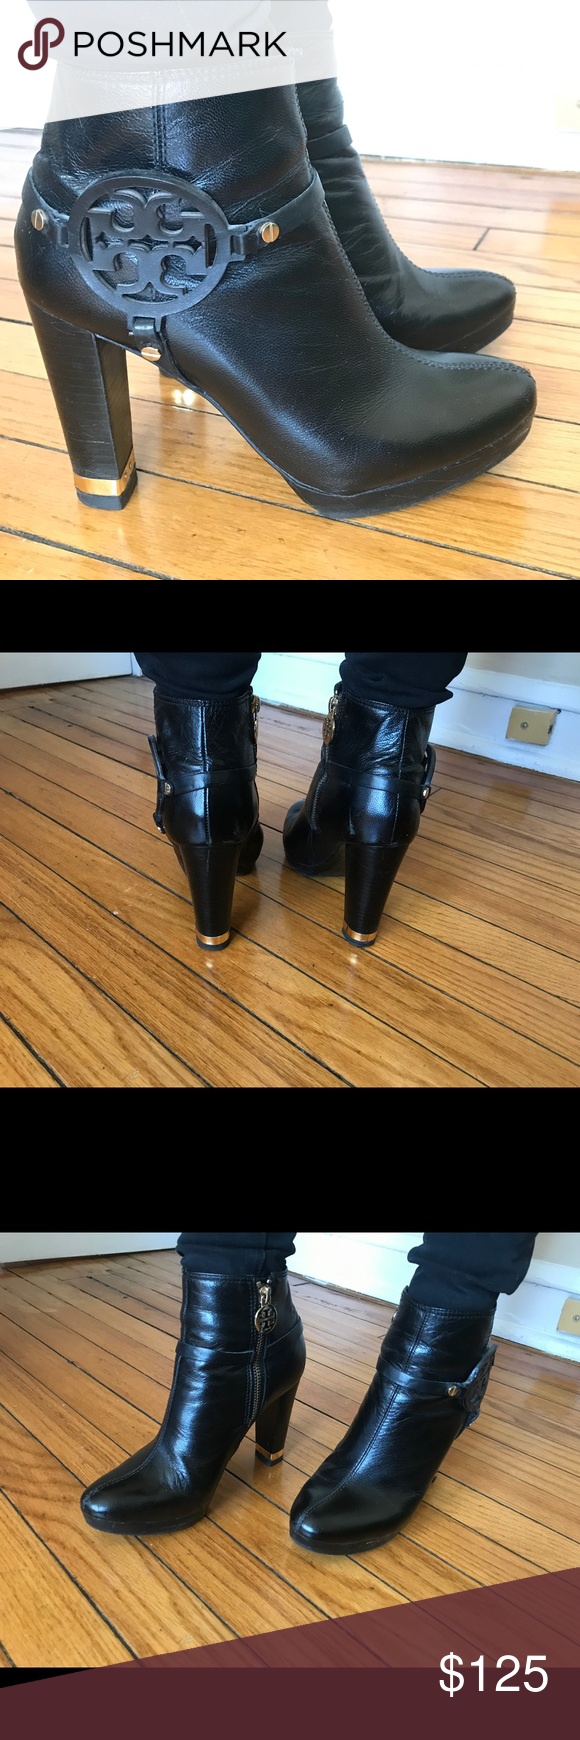 380ff9ed048b Tory Burch Whitney Ankle Boots 7.5 Tory Burch Whitney Ankle boots in good  condition. Minor